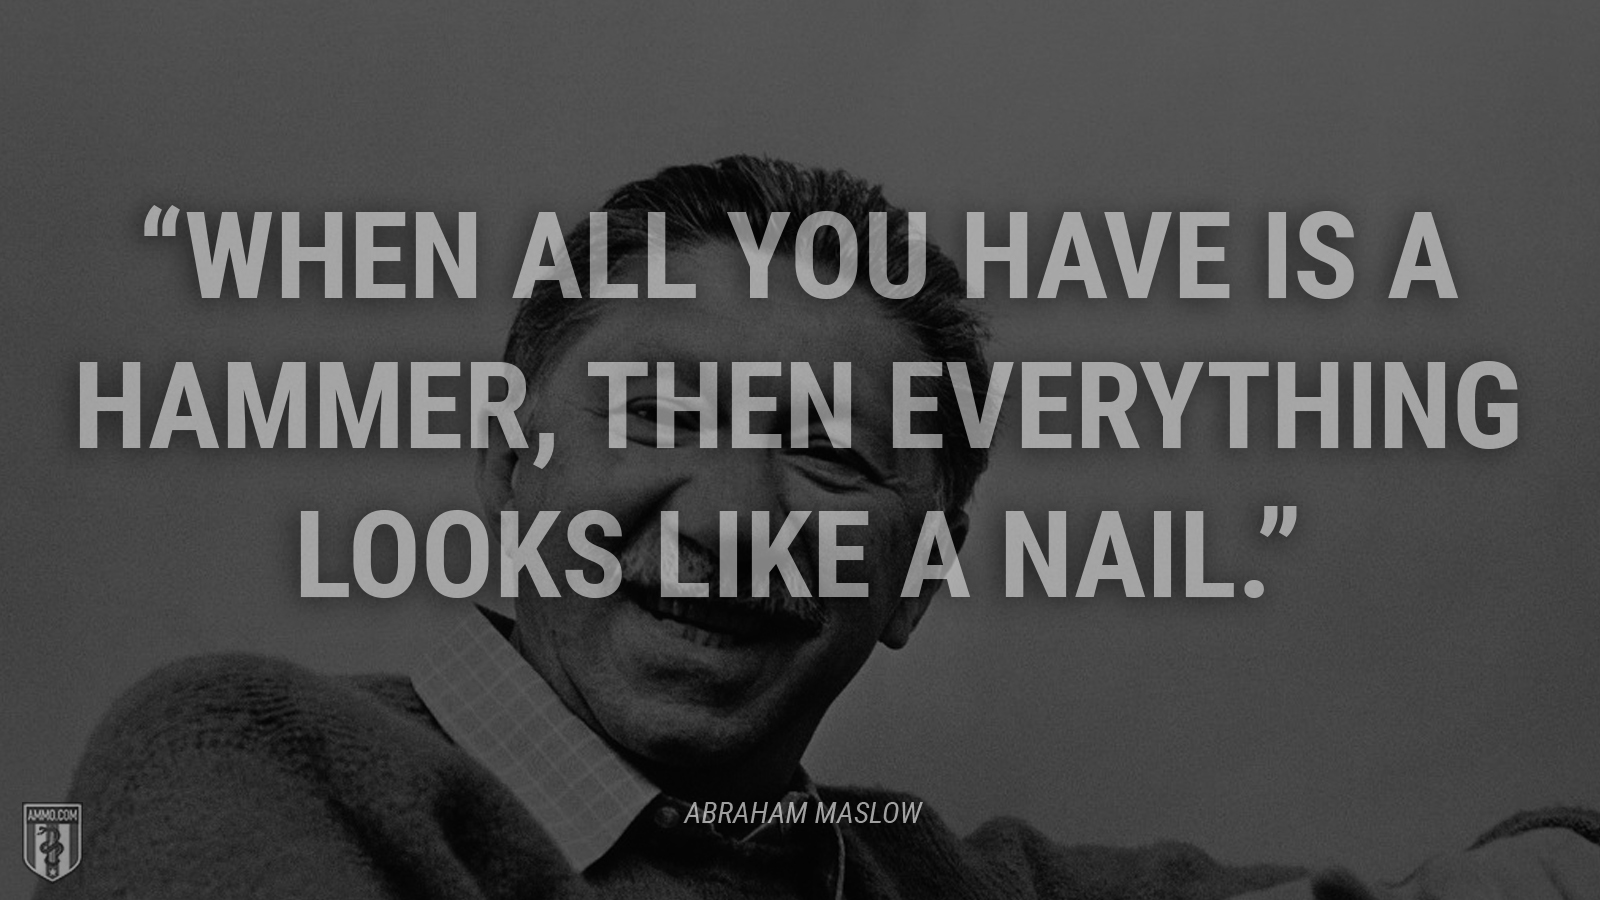 """When all you have is a hammer, then everything looks like a nail."" - Abraham Maslow"